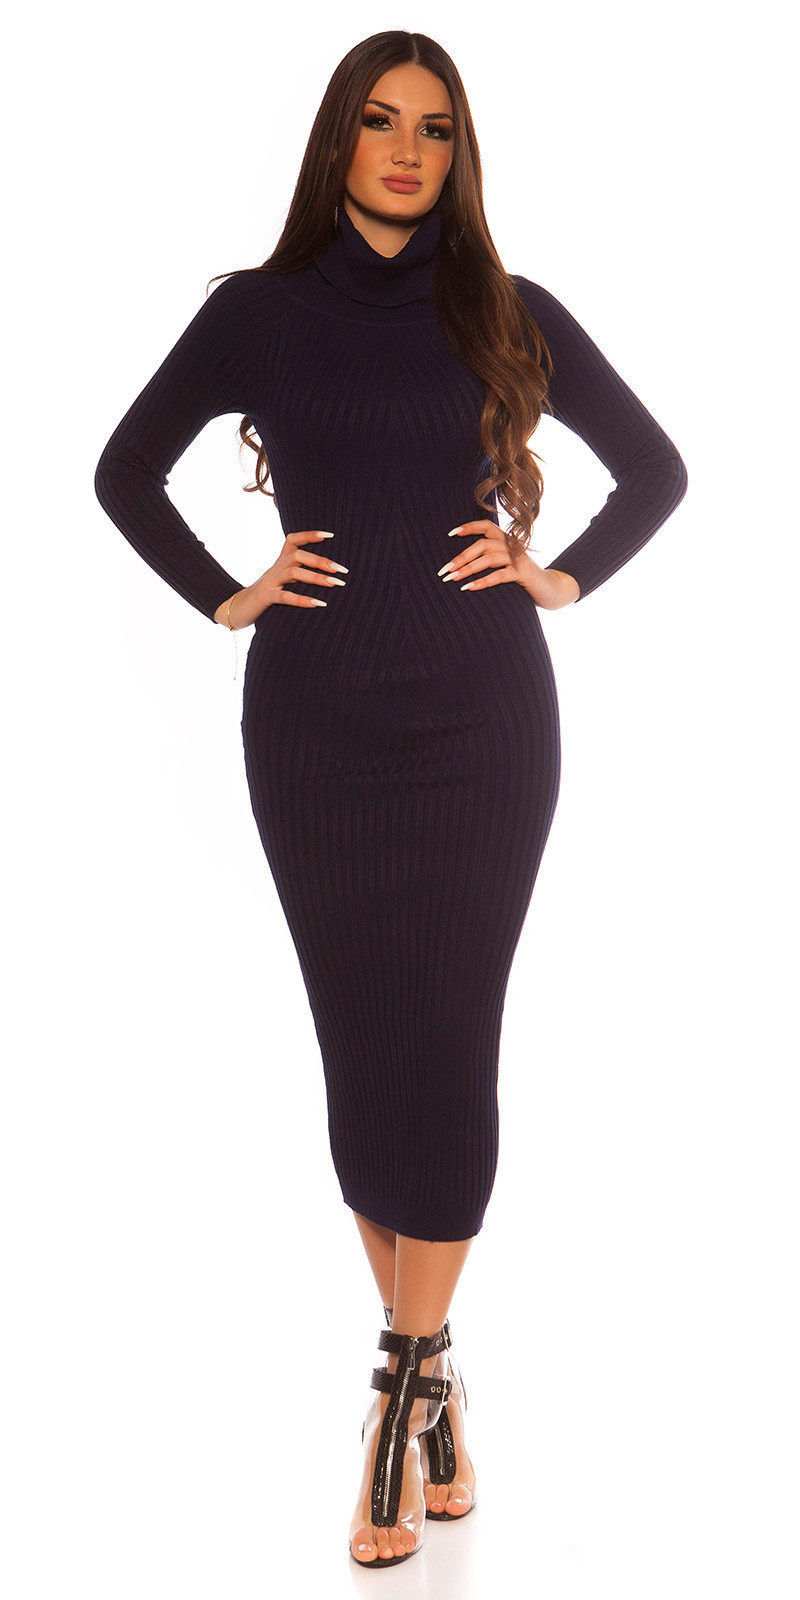 Sexy Longsleeve Turtleneck Knit dress Navy